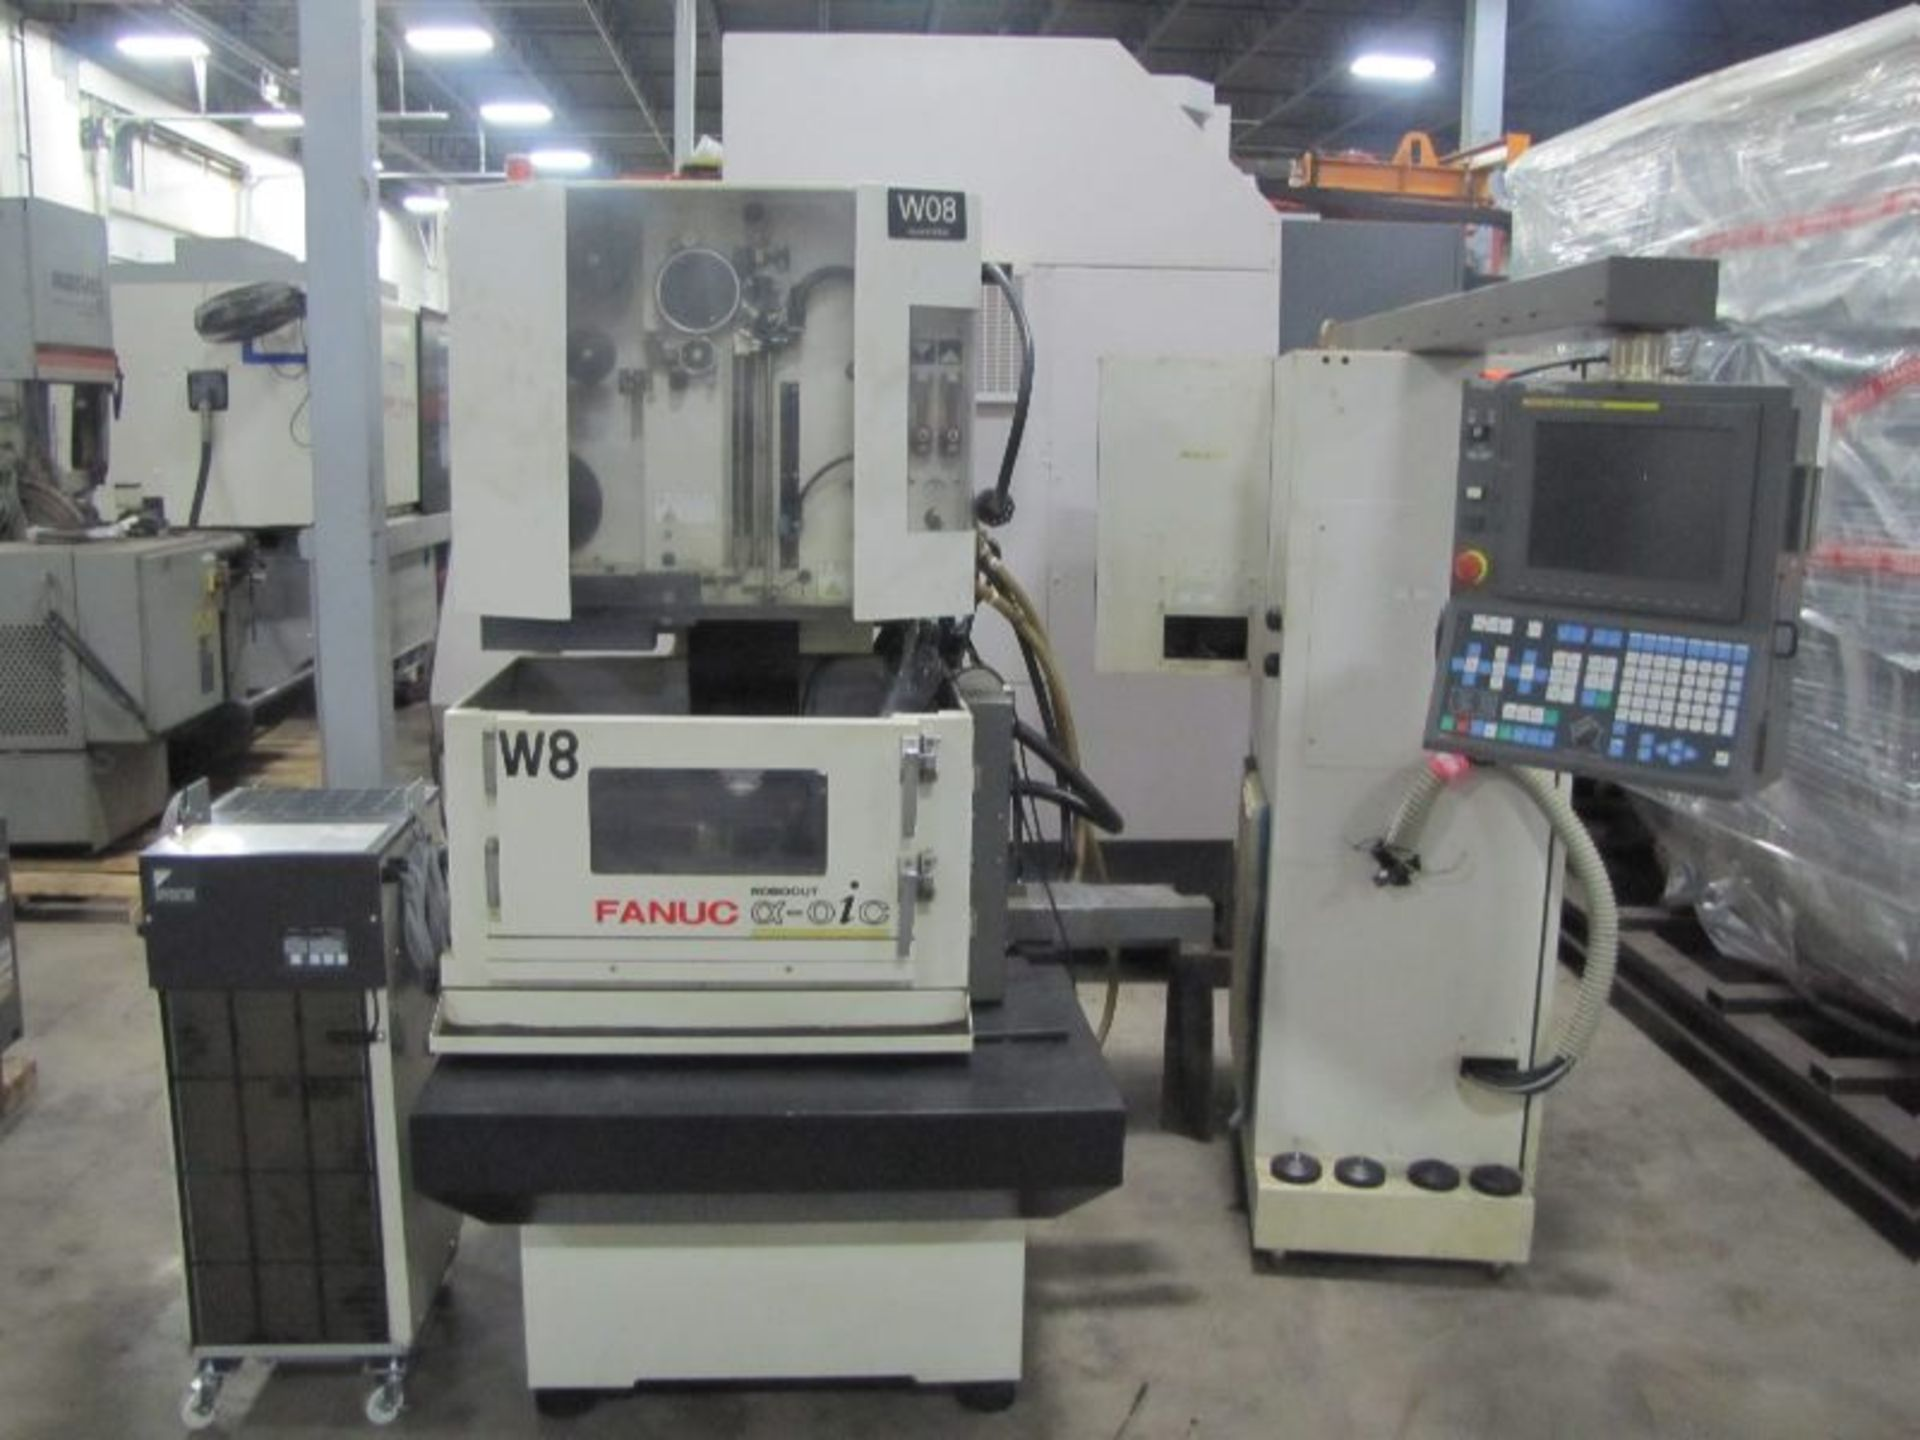 Lot 45 - 2005 Fanuc Wire EDM Model OiC Robocut with Fanuc Series 180iS-WB Control